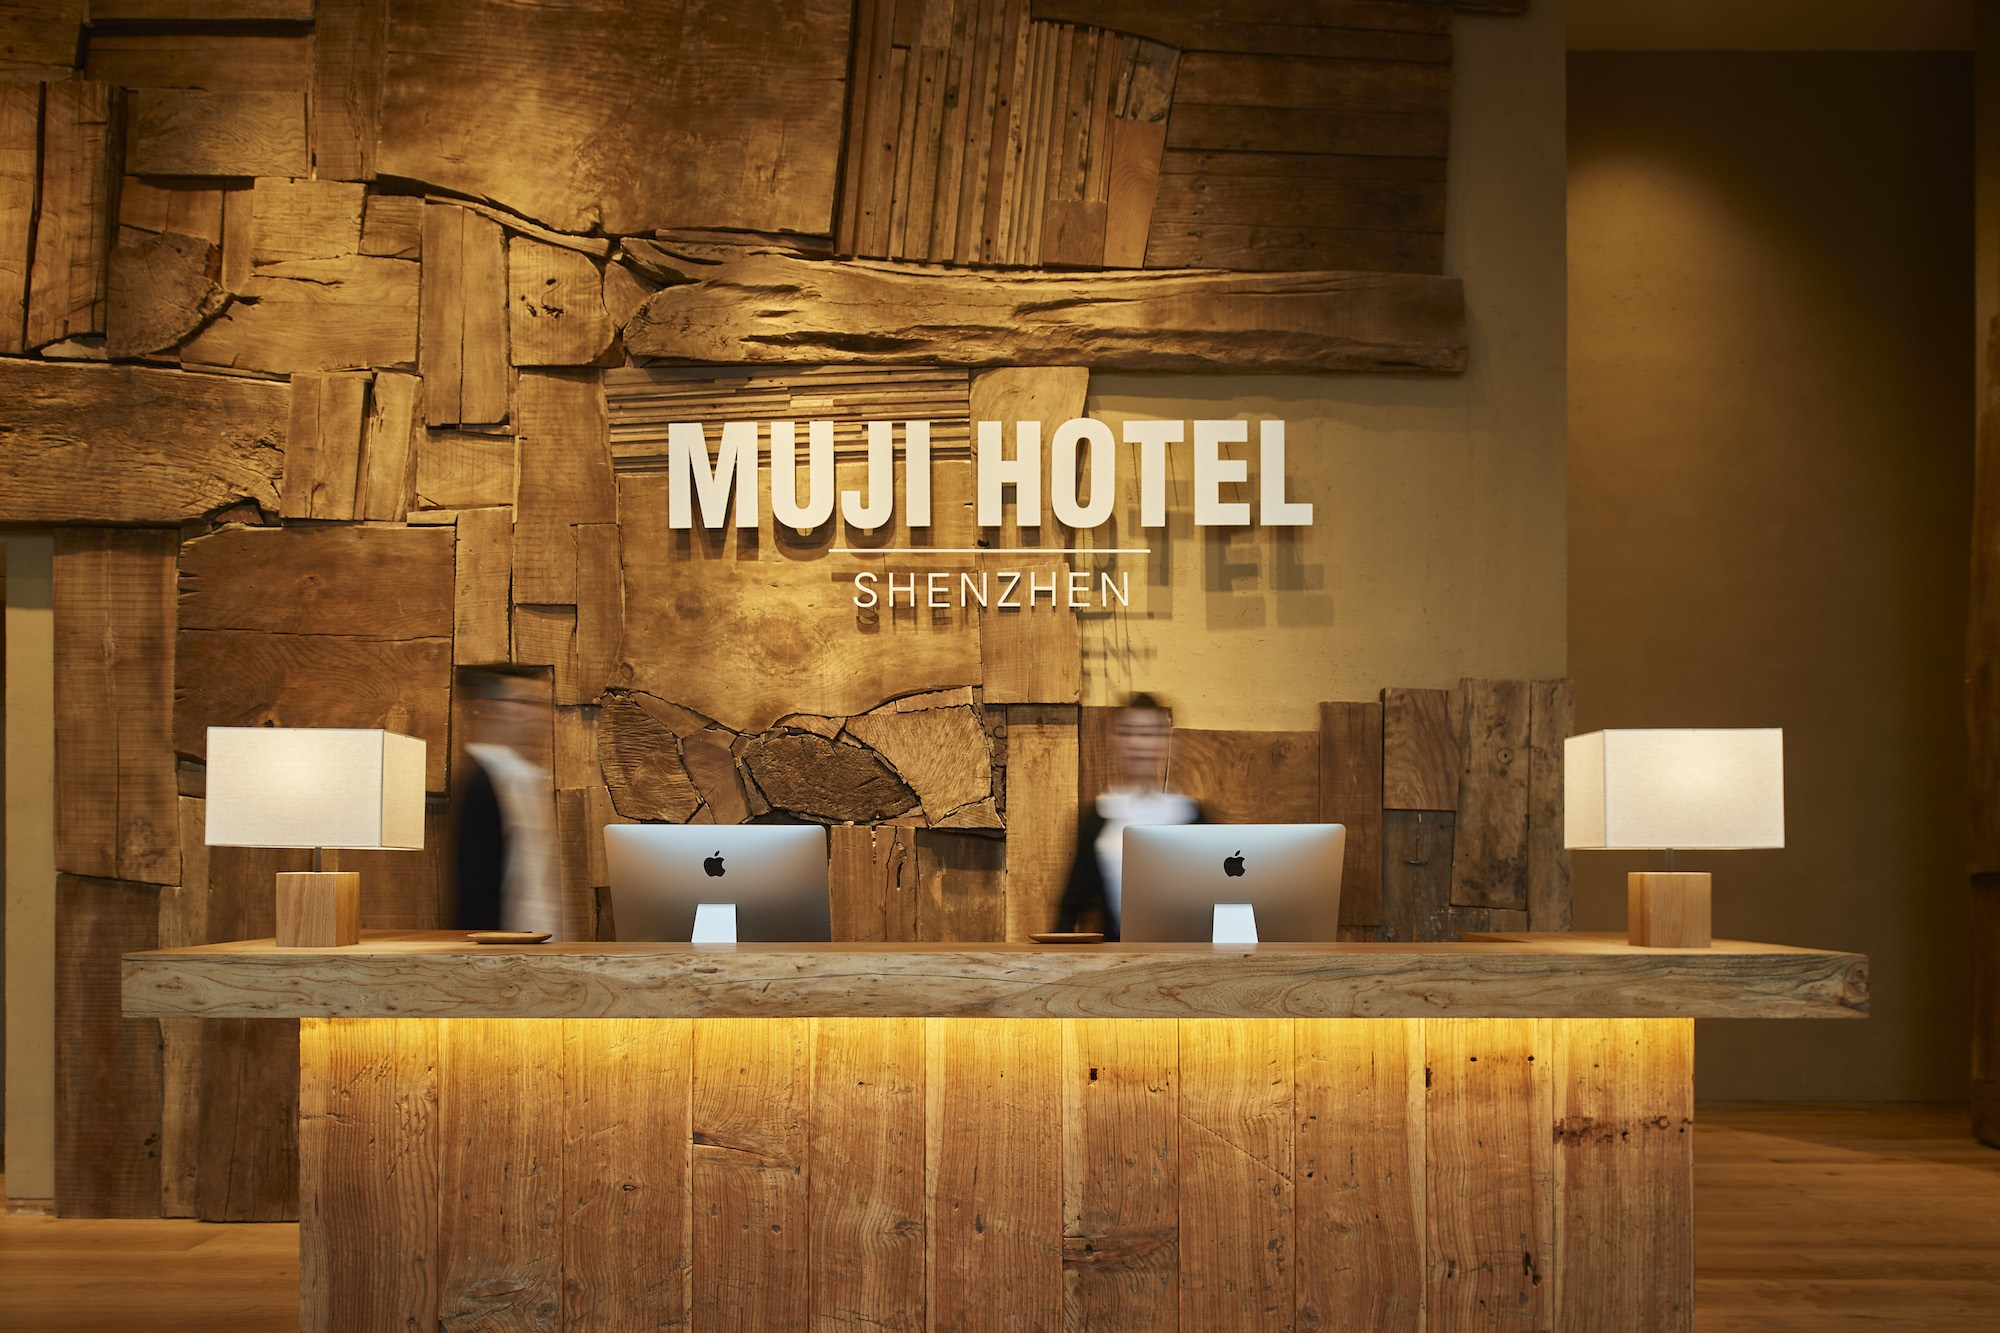 The interior design and amenities of the hotel have been executed by Muji, exemplifying its signature muted palette and attention to detail in spatial and product design.